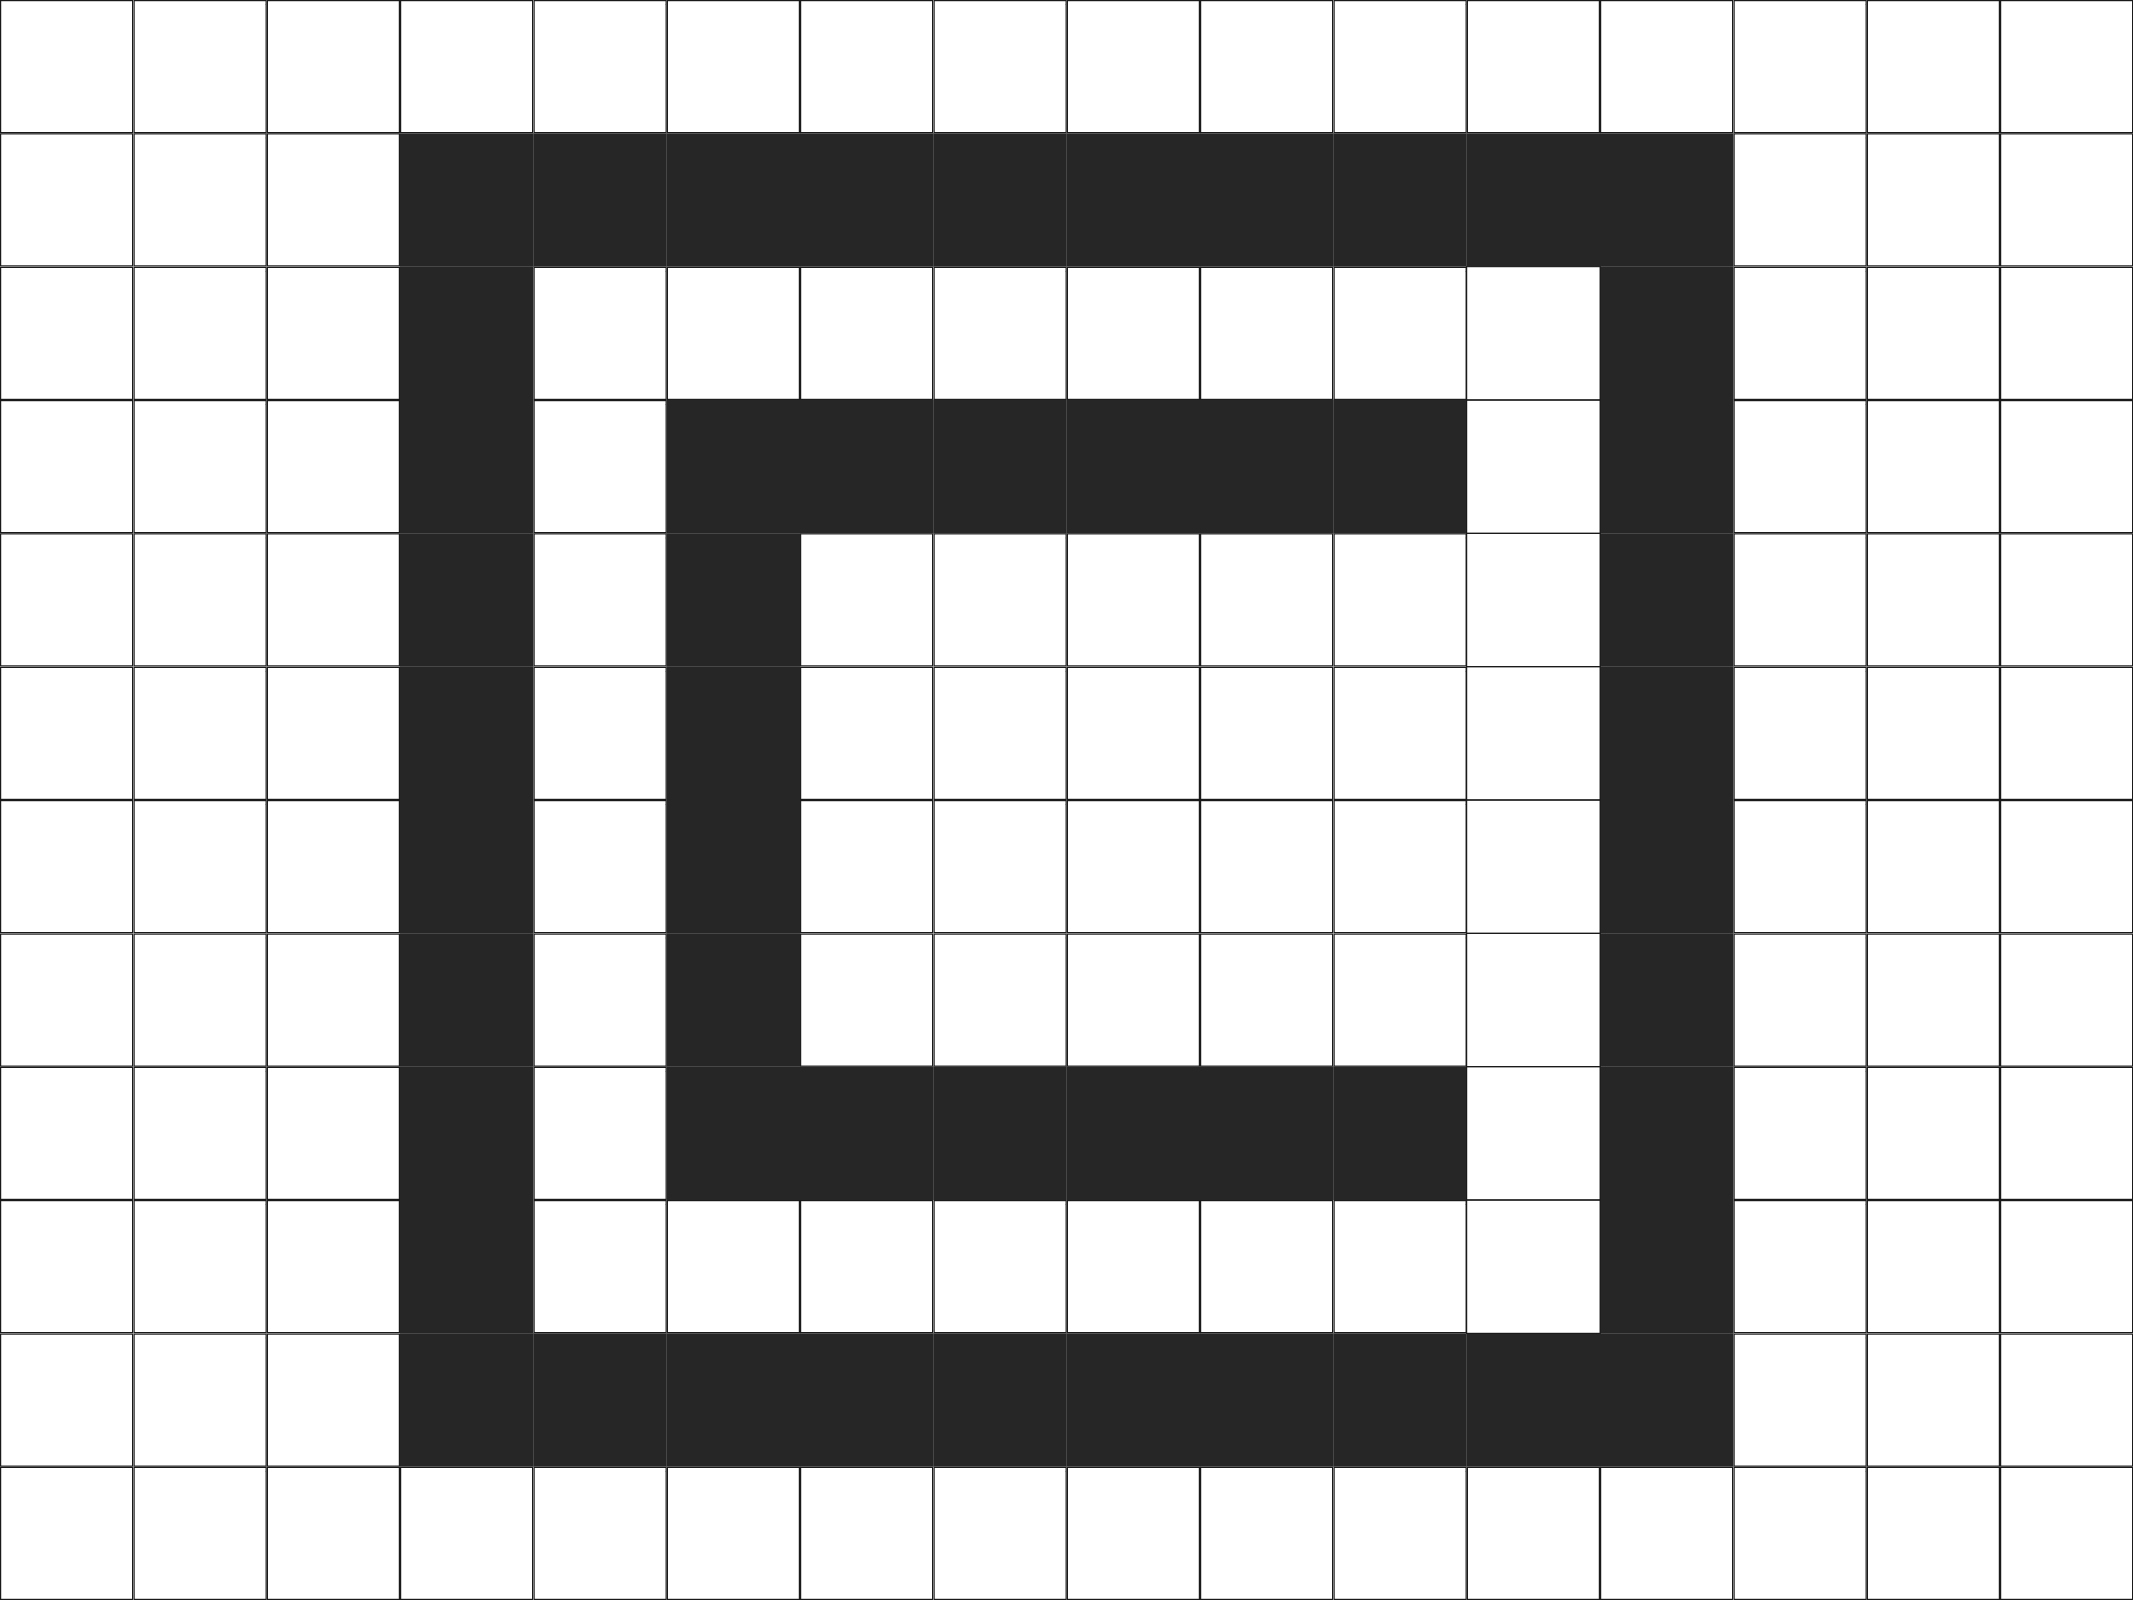 A Plagiarism Scandal Is Unfolding In The Crossword World - Printable Crossword Puzzles Uclick